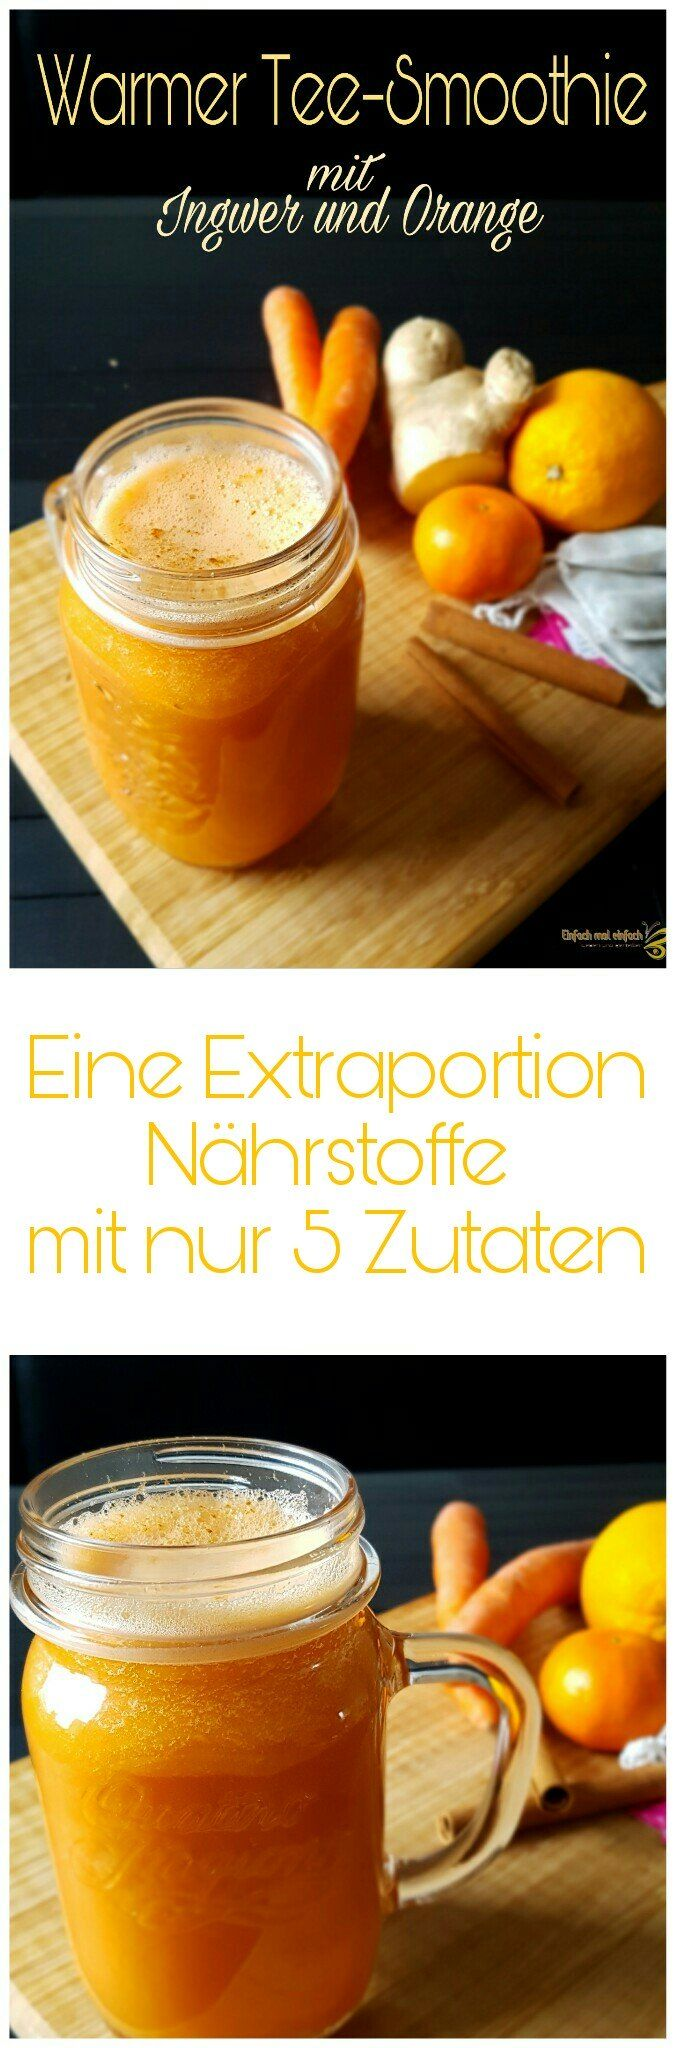 Warmer Tee-Smoothie mit Ingwer und Orange